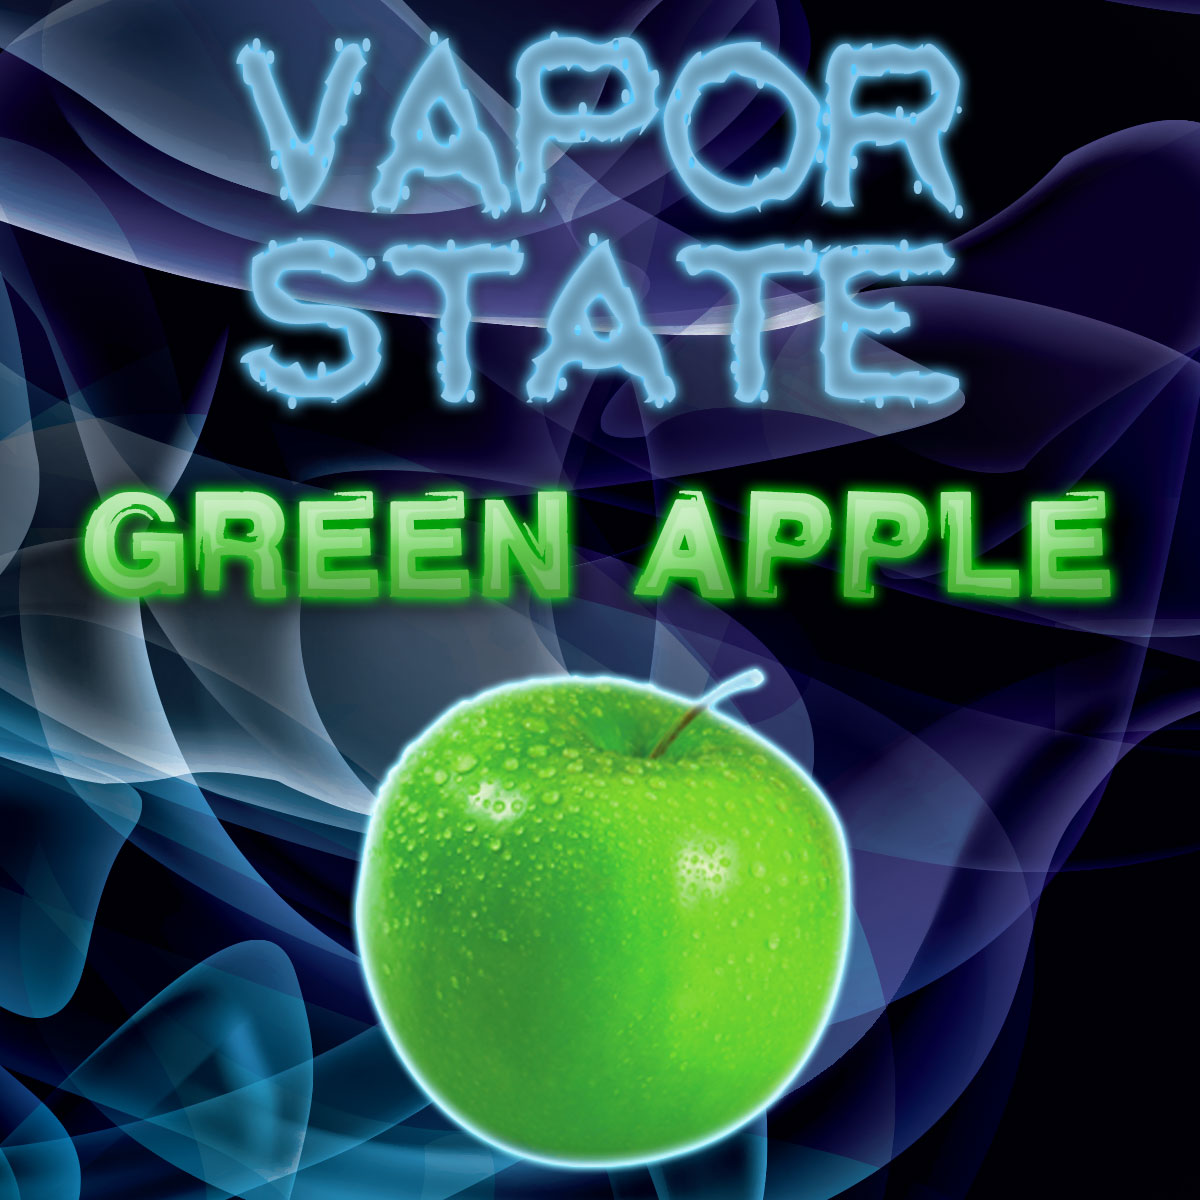 Green-Apple.jpg